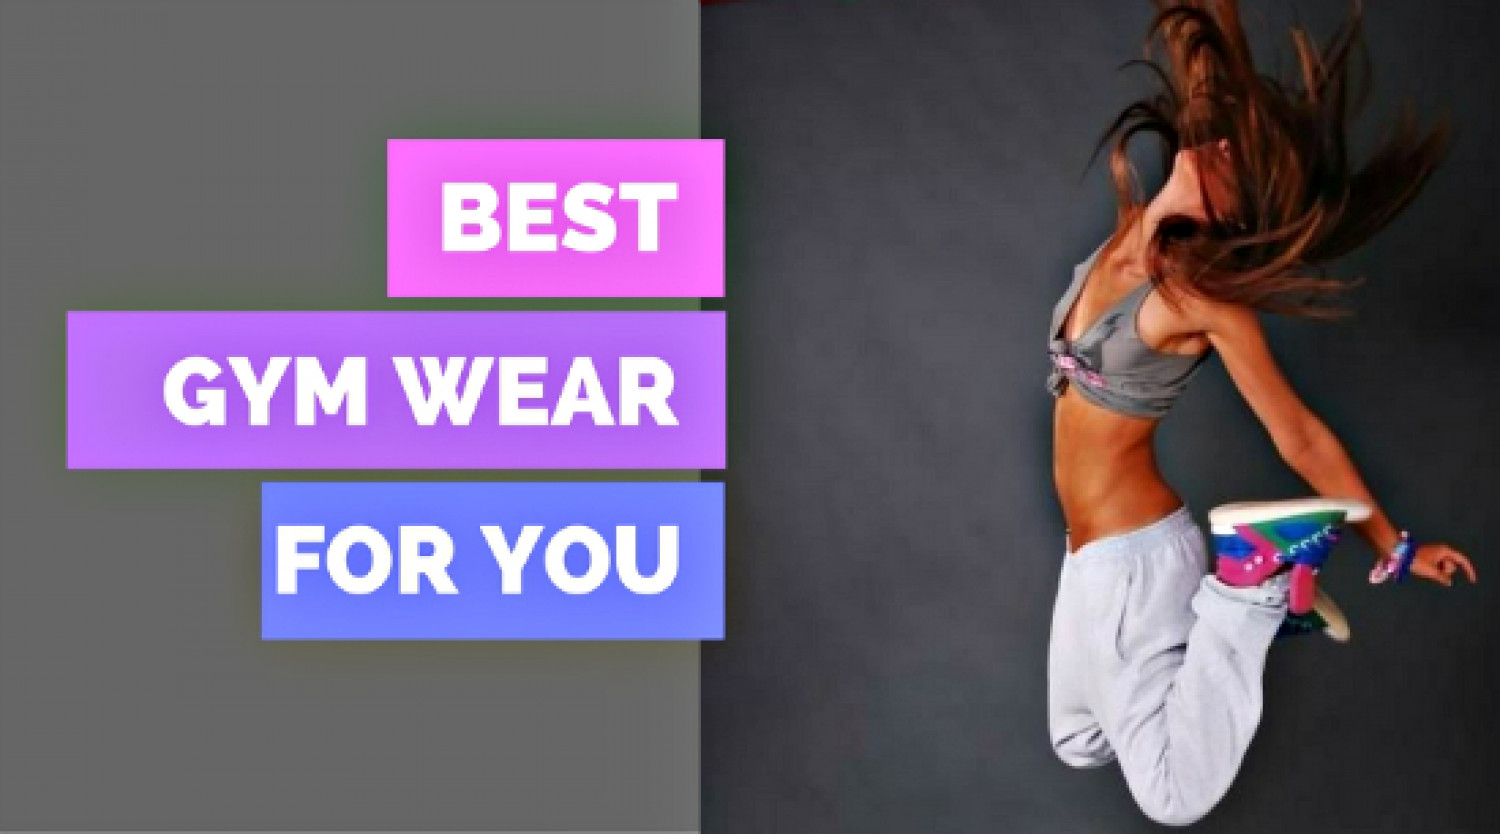 Grab Best Deals On Wholesale Custom Gym GearSale At Gym Clothes Infographic